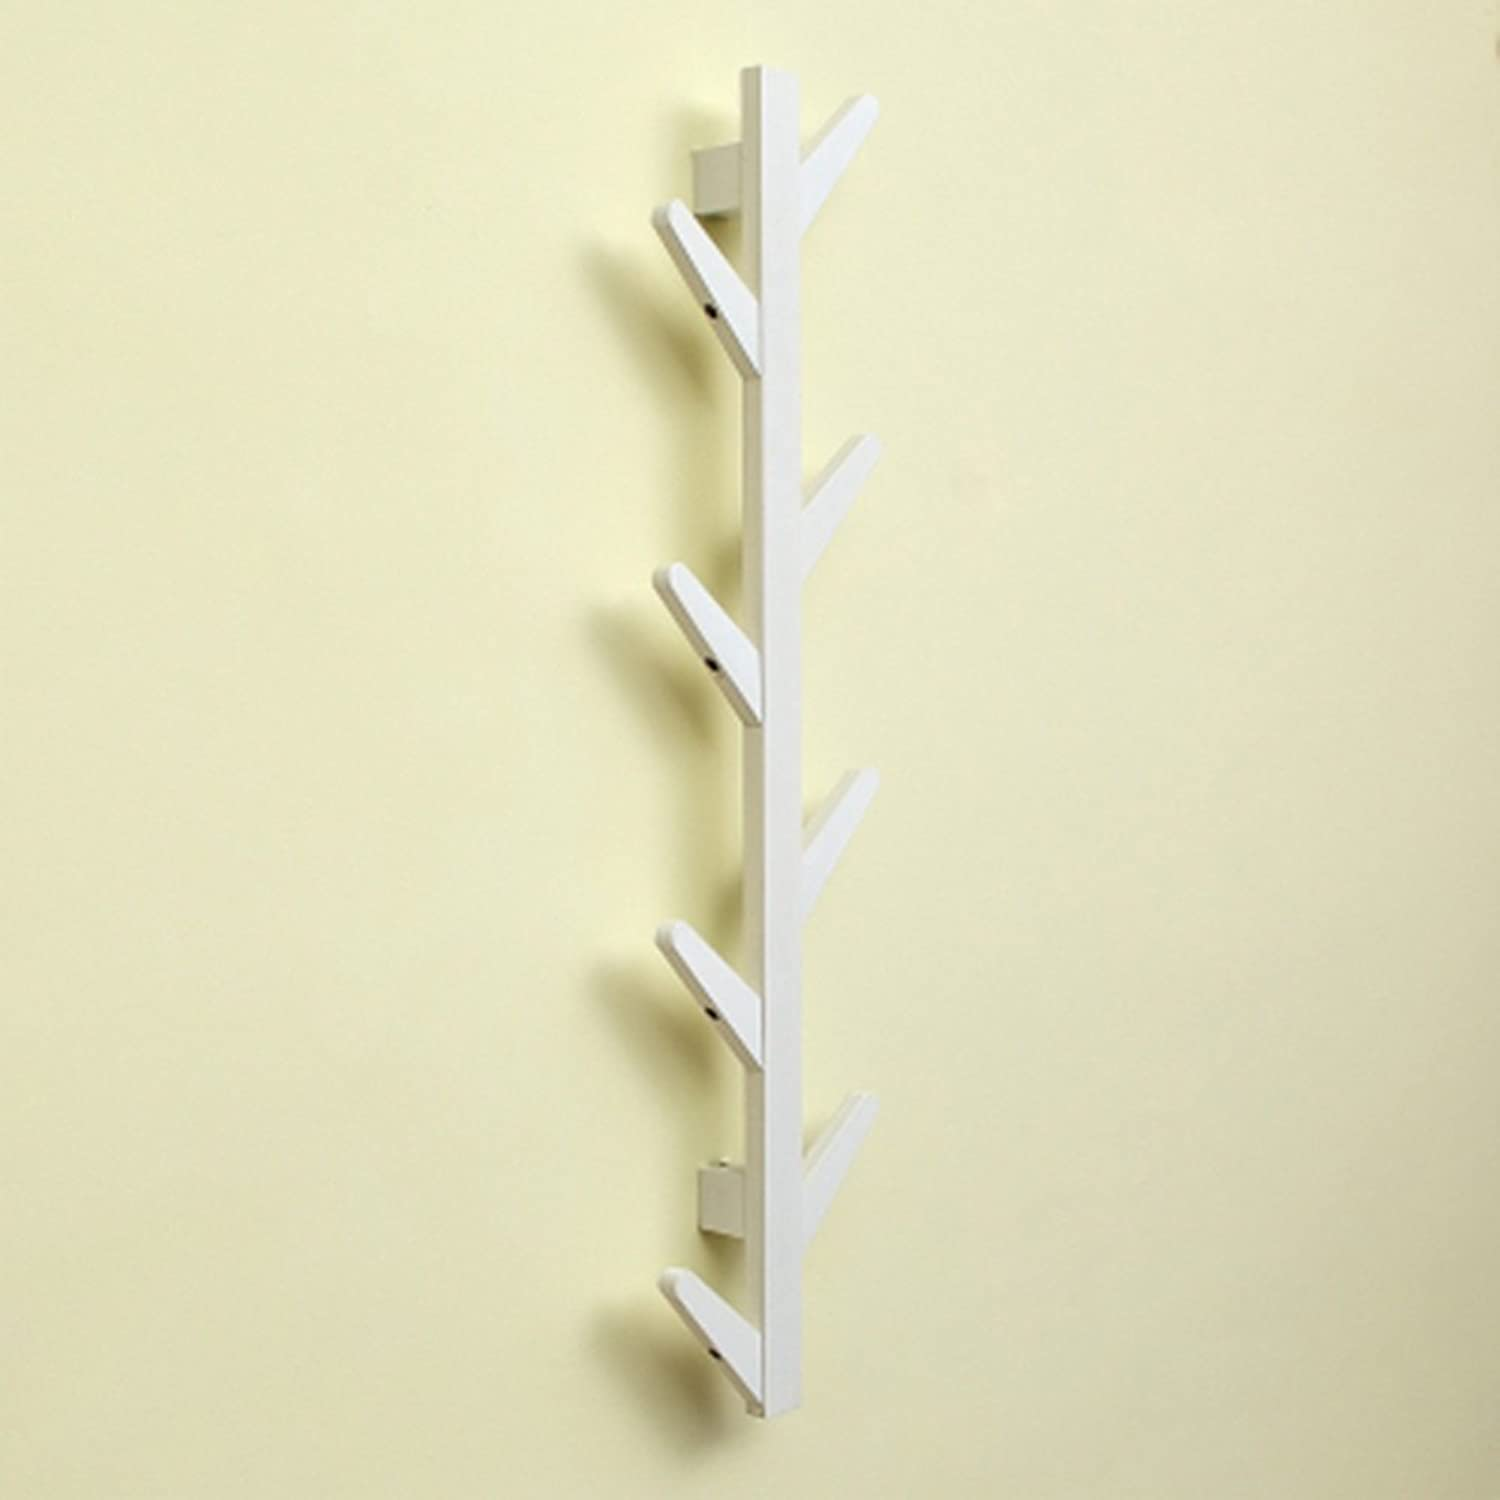 JIANFEI Wall Mounted Coat Rack Tree Shape Hook Up Rounded Corners Anti-Collision Bamboo, 3 colors (color   White color, Size   22  7  98cm)